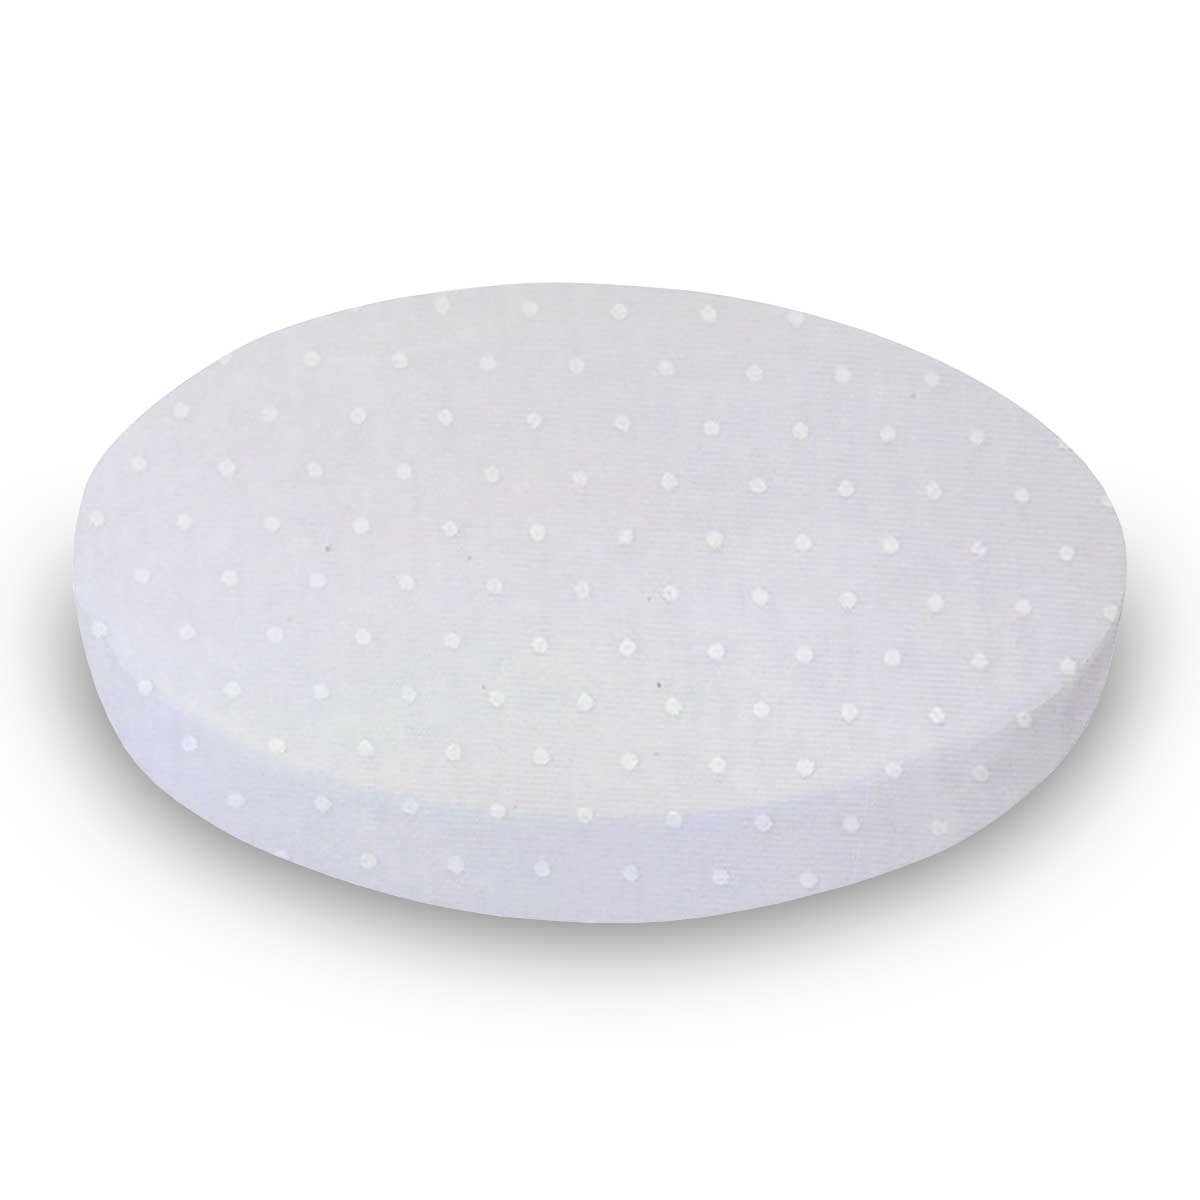 SheetWorld Fitted Oval (Stokke Mini) - White Swiss Dot Jersey Knit - Made In USA by SHEETWORLD.COM